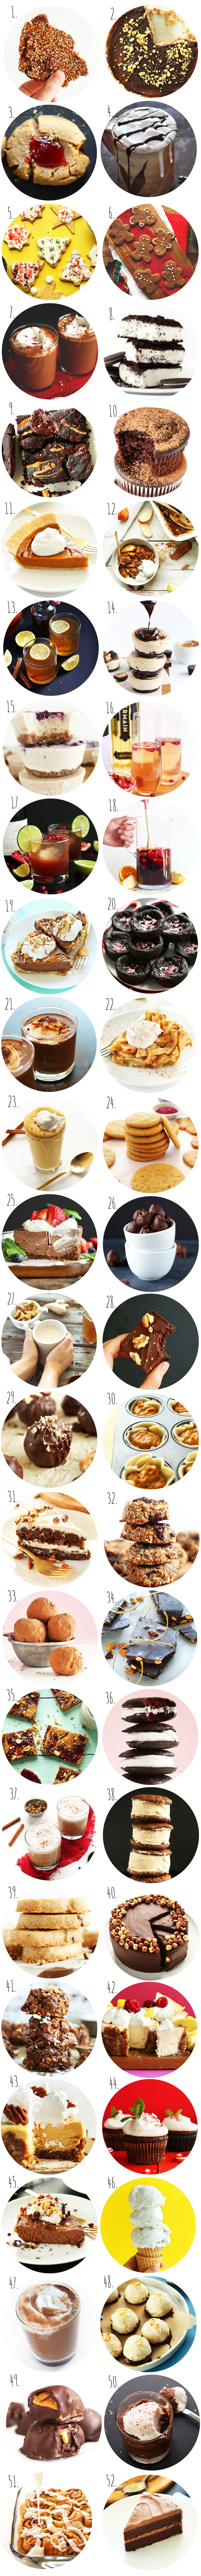 Collection of photos of vegan Christmas dessert and beverage recipe ideas